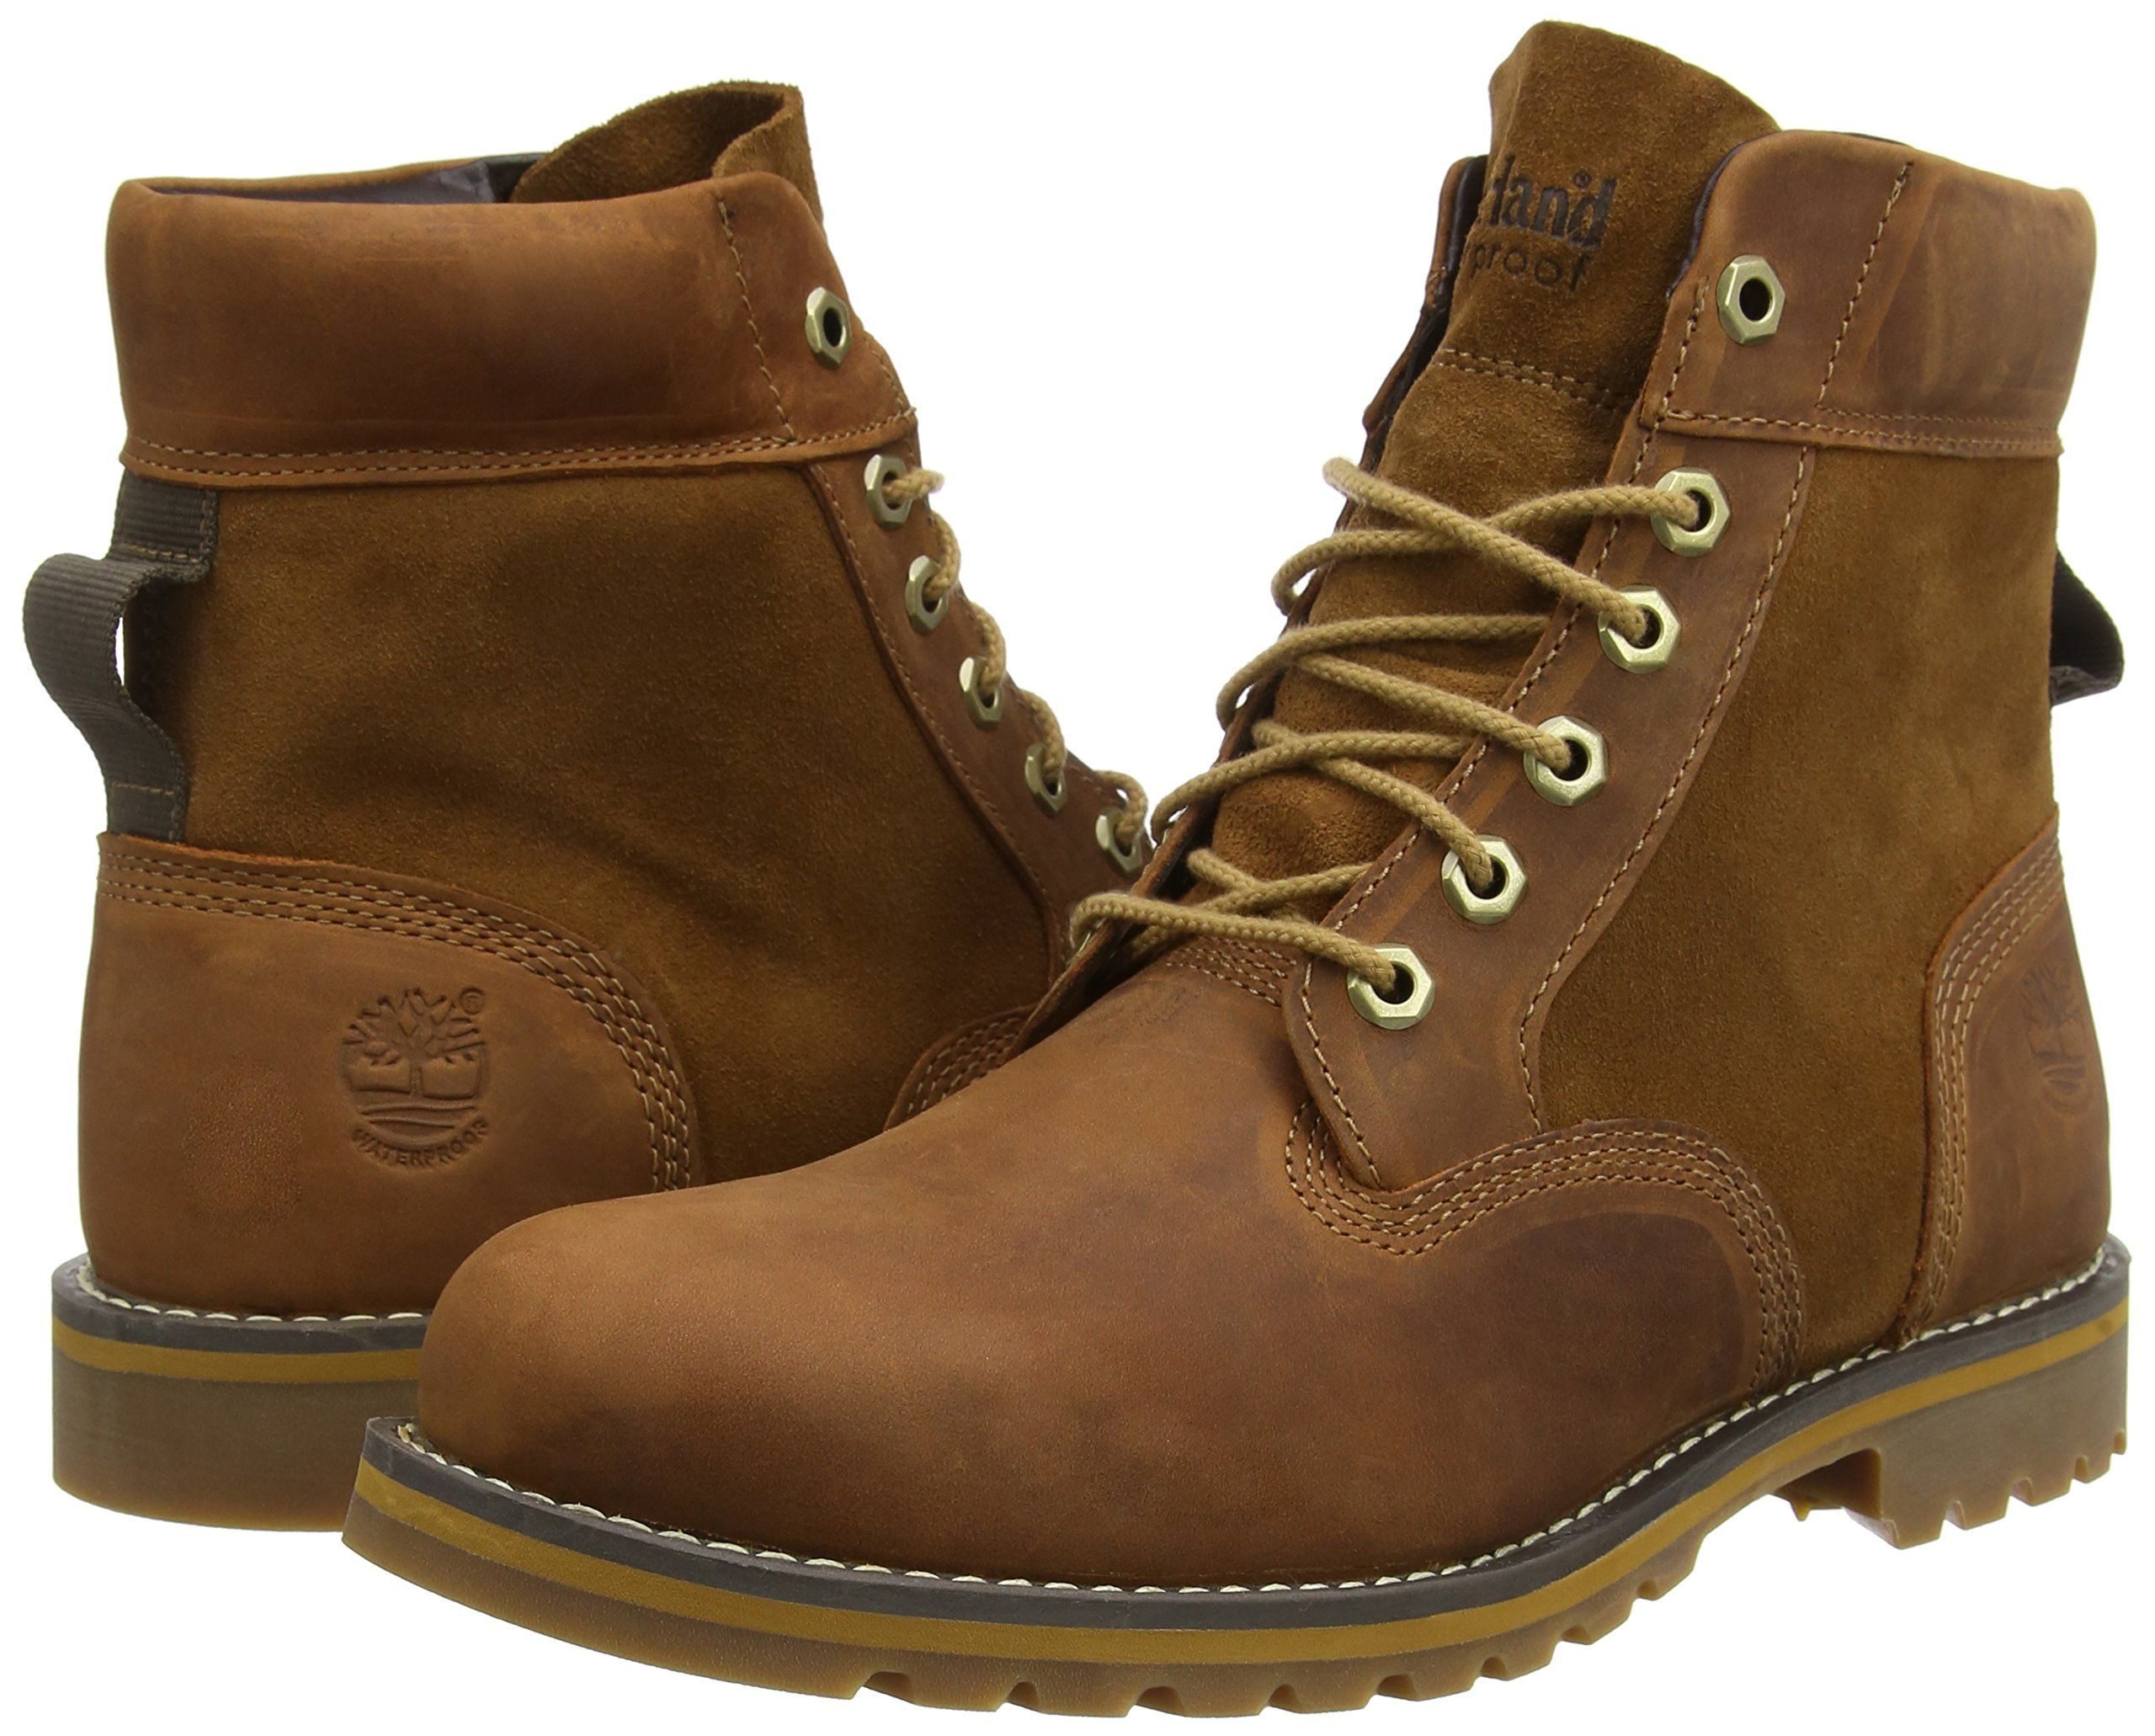 Timberland Larchmont Ftmlarchmont 6in Wp Boot Mens Ankle Boots Beige  Glazed Ginger